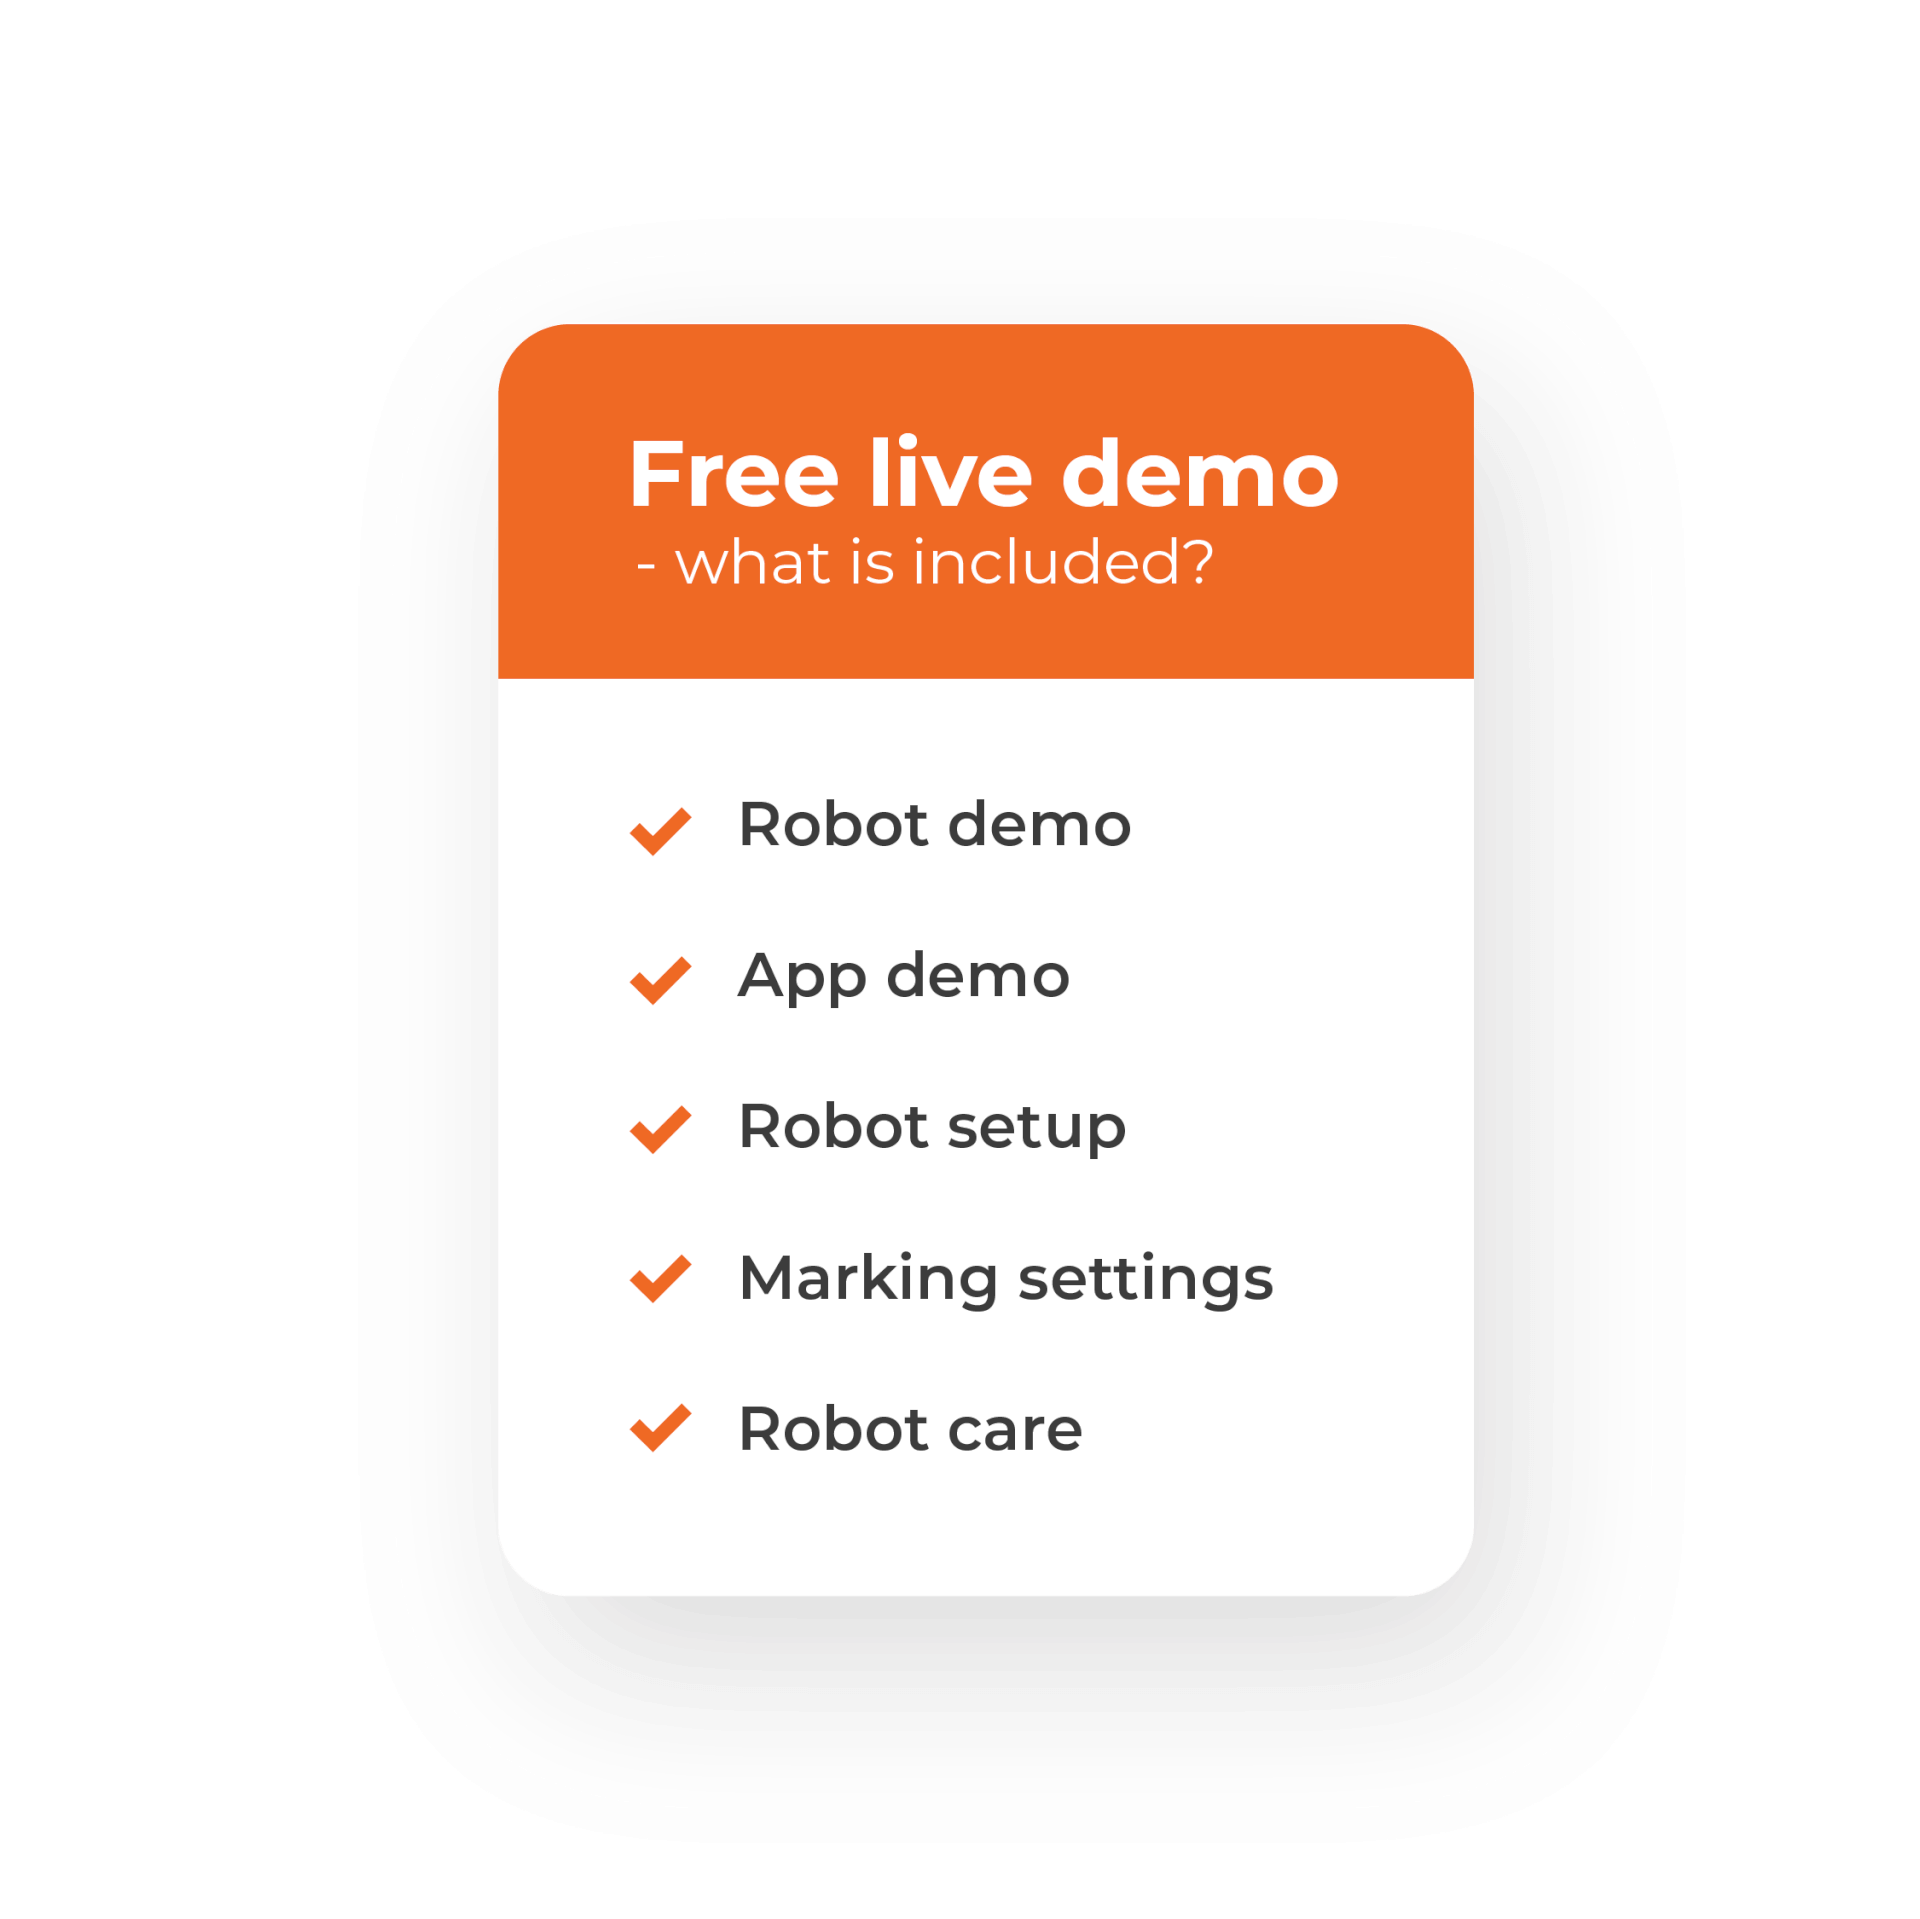 Included in free demo